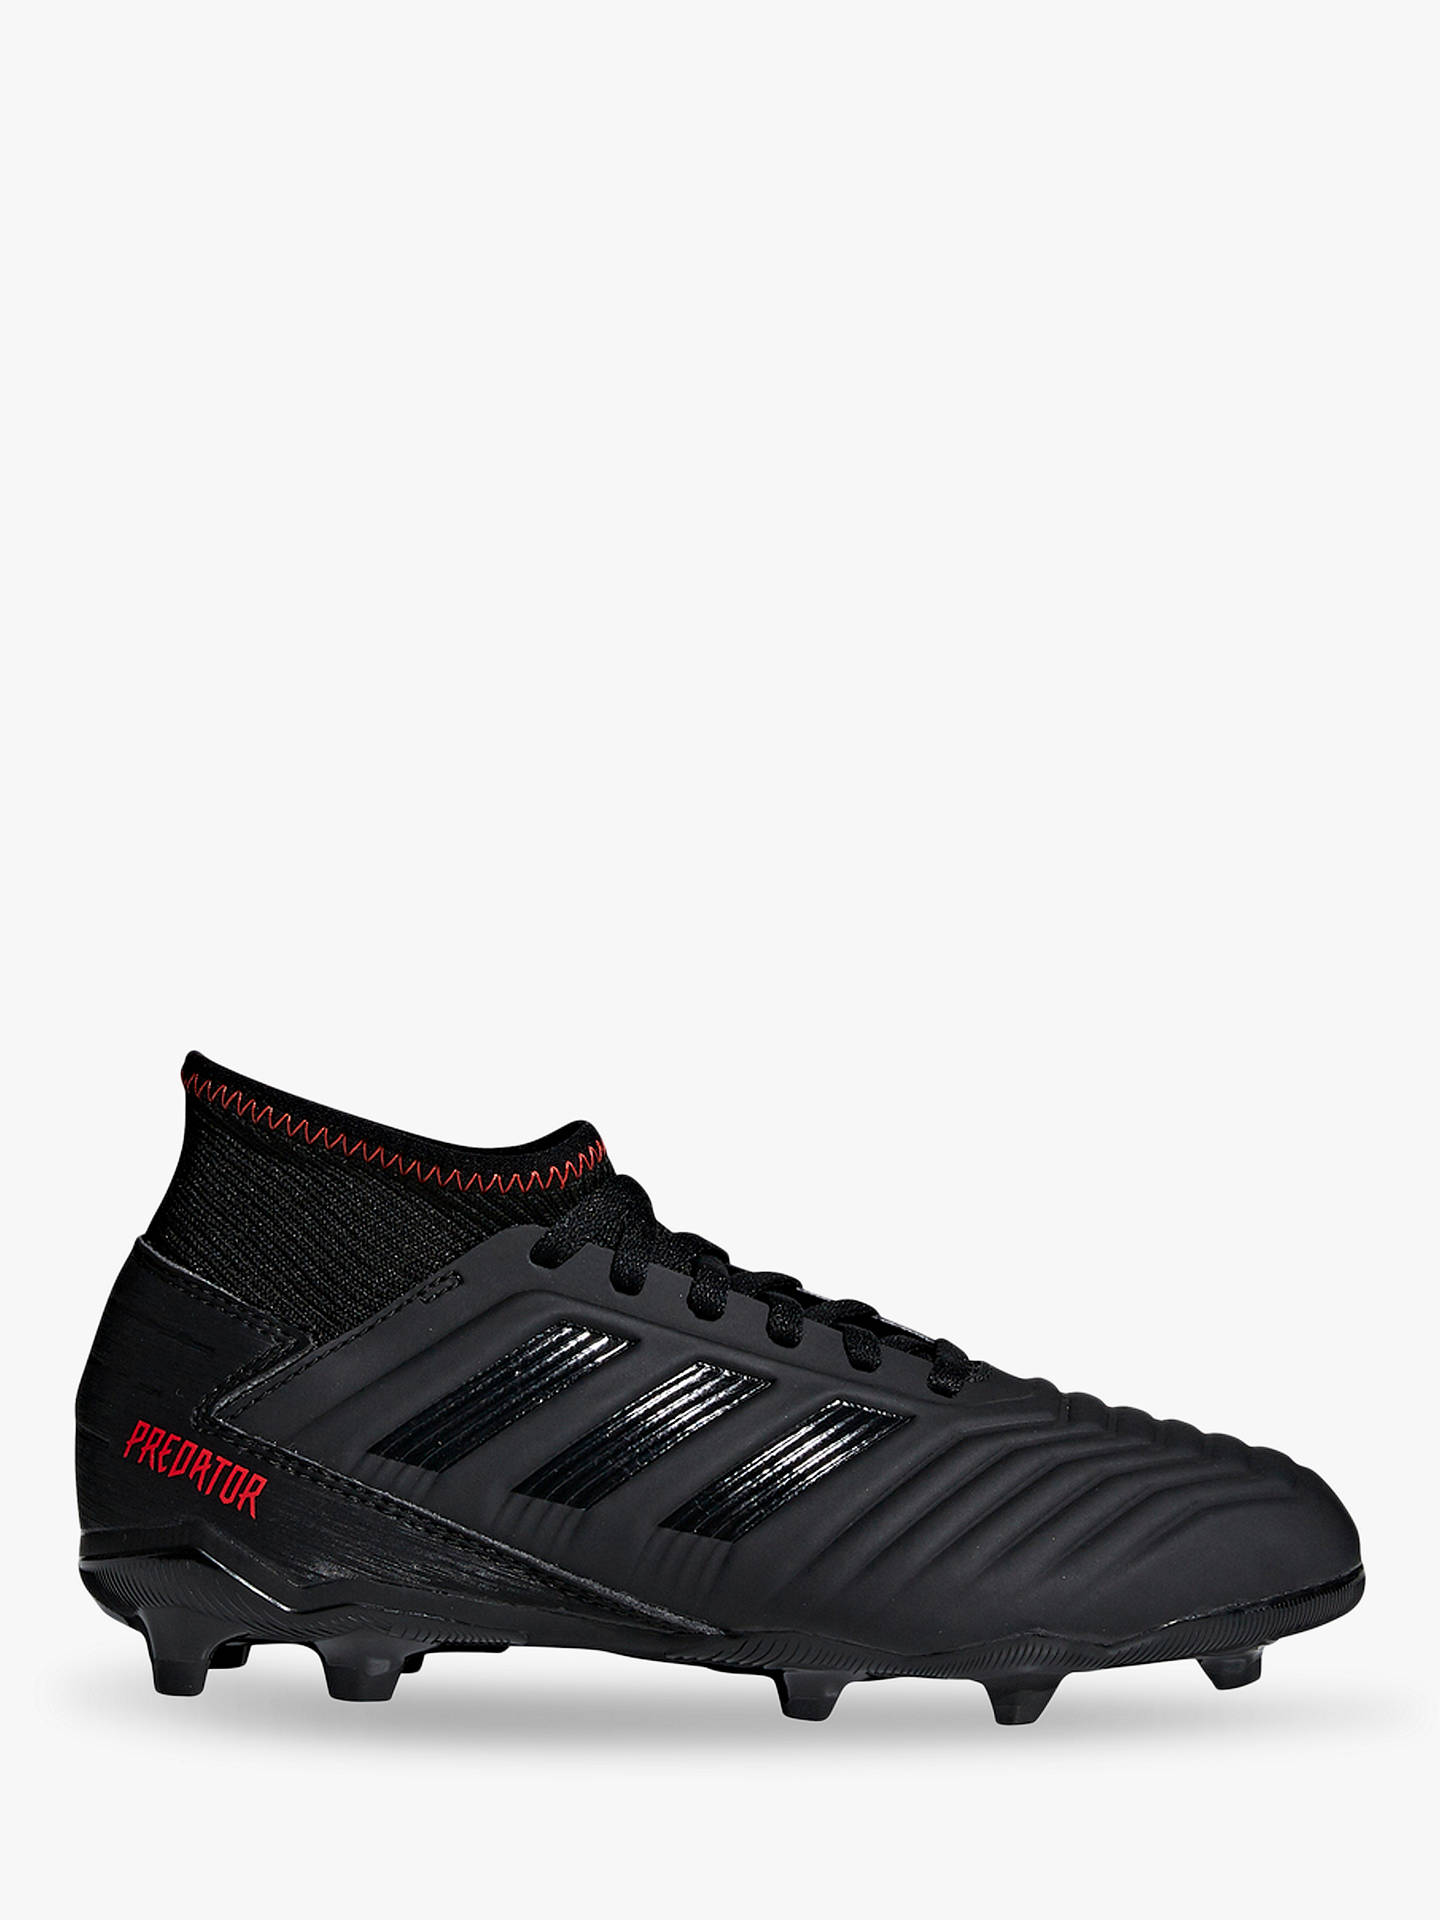 bda812a8422 adidas Children's Predator 19.3 Firm Ground Football Boots, Core  Black/Active Red